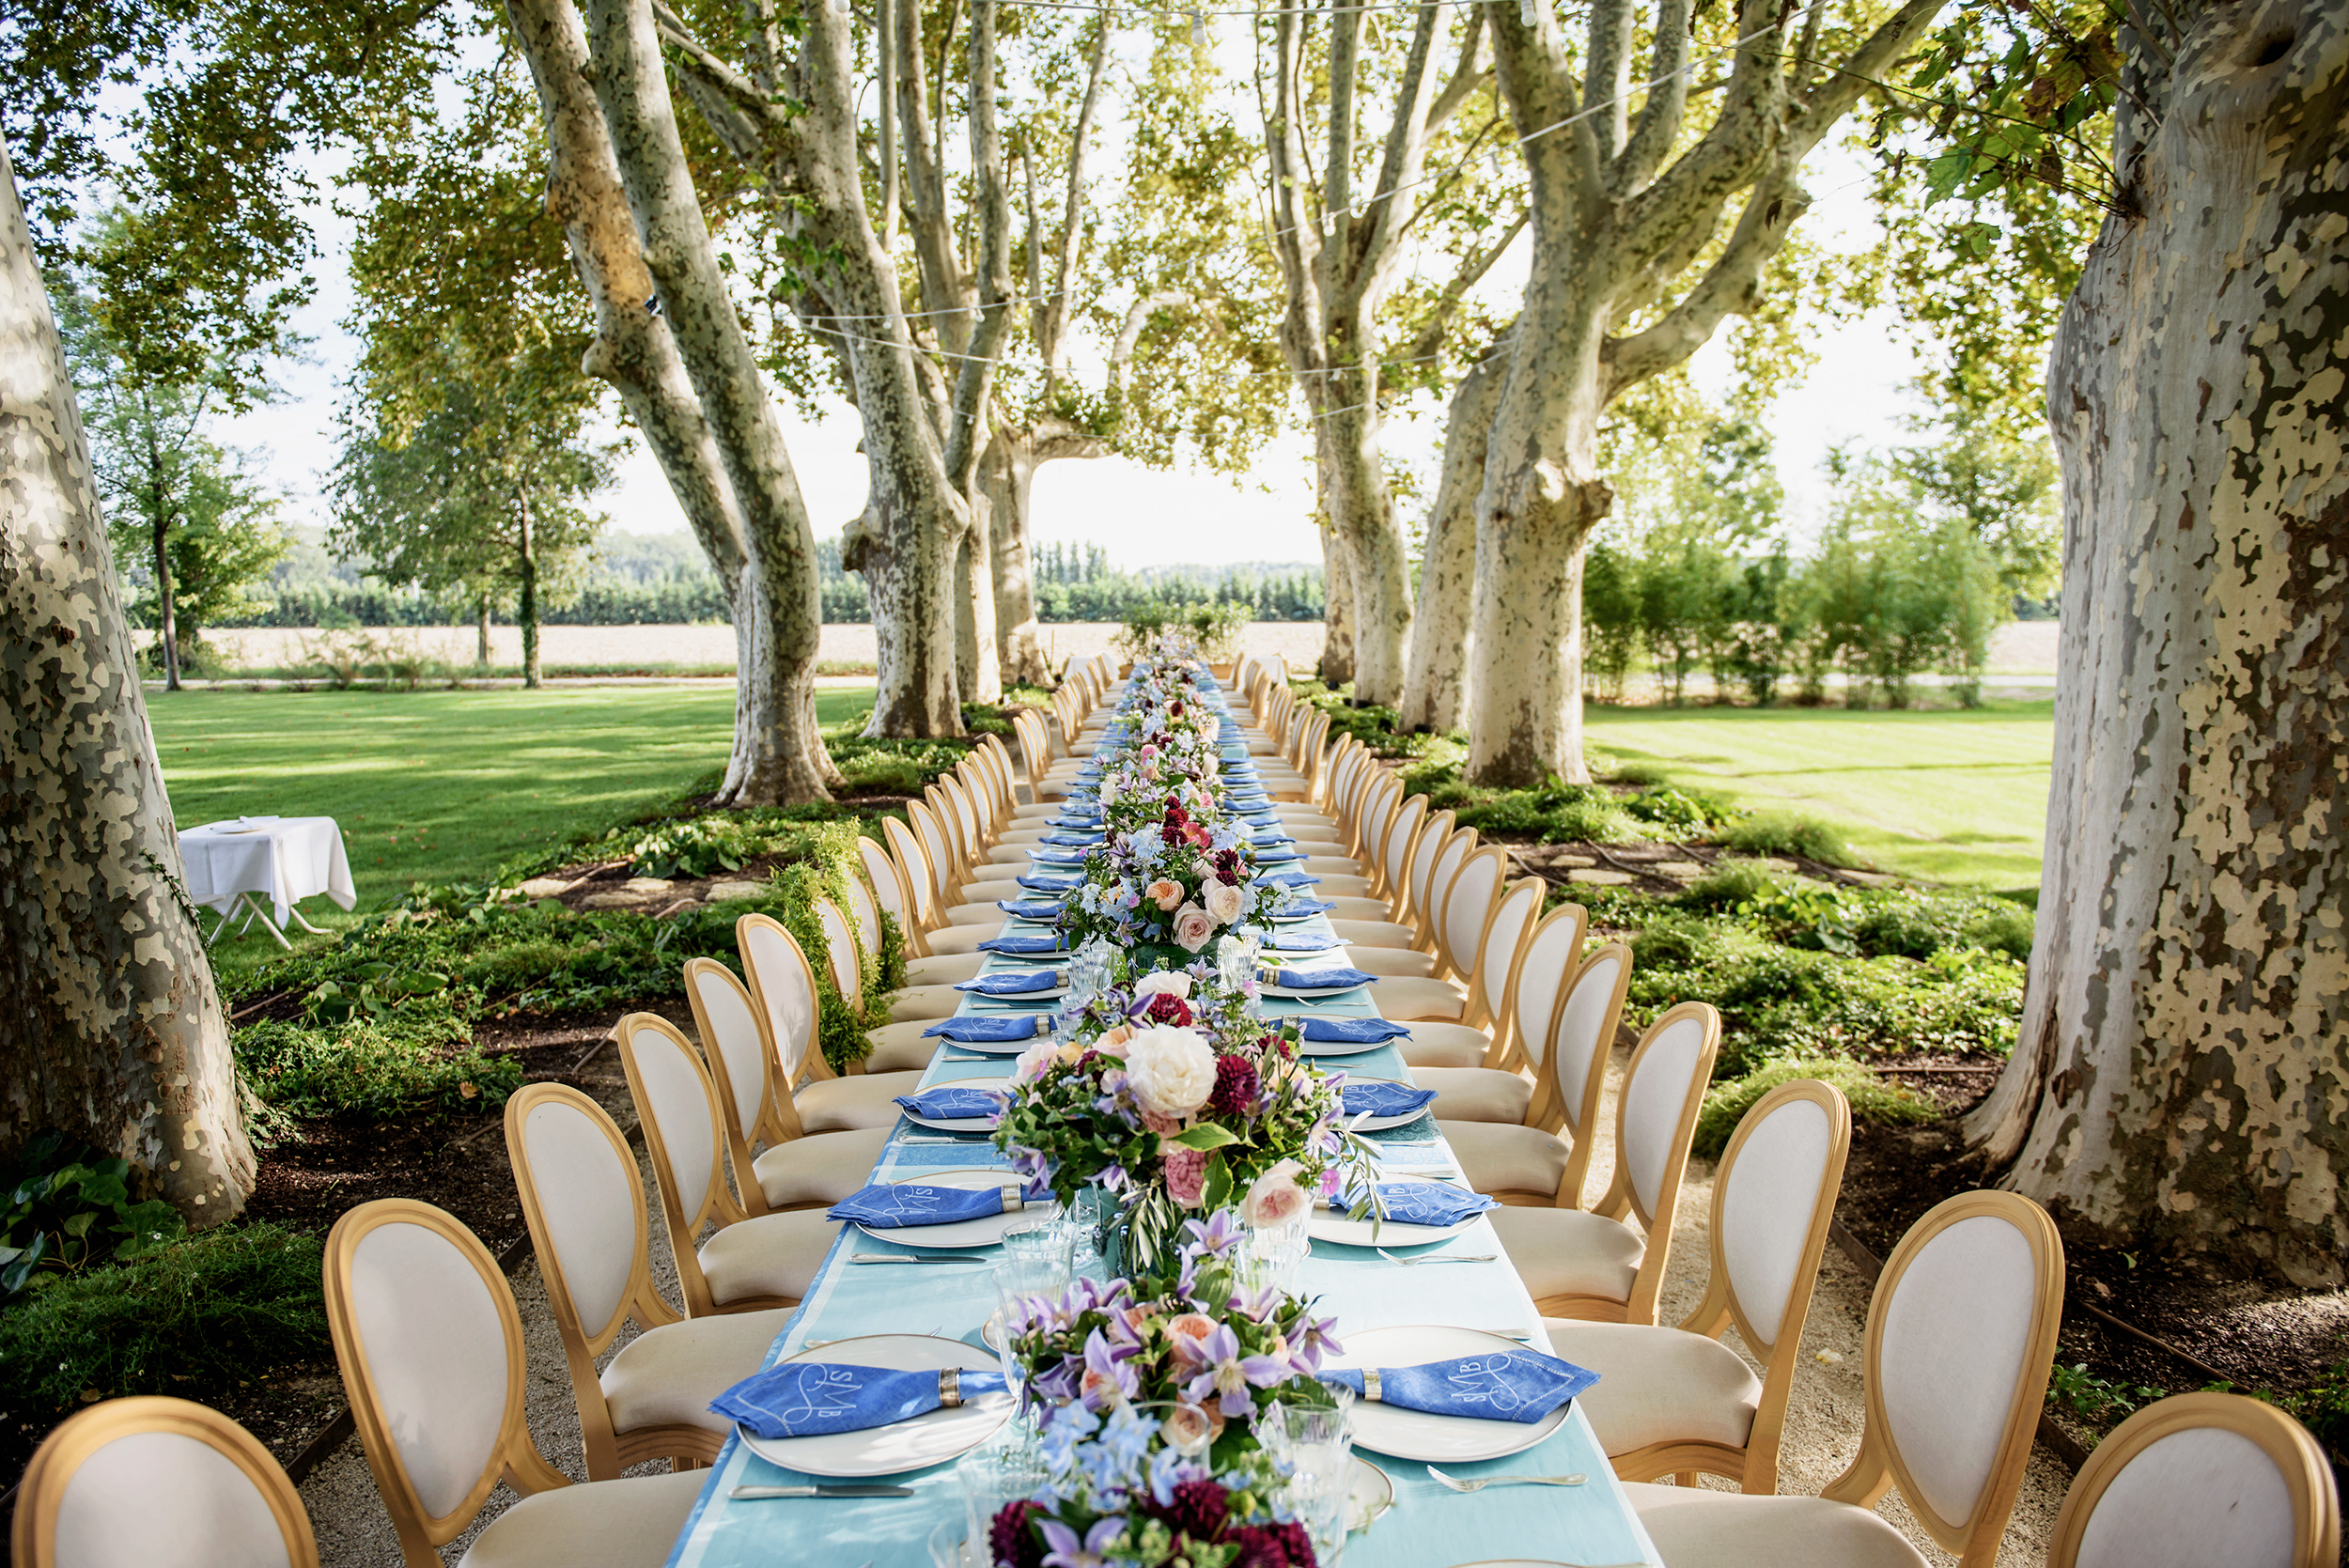 Wedding Color Palettes.6 Spring Wedding Color Palettes That Are Hot Right Now